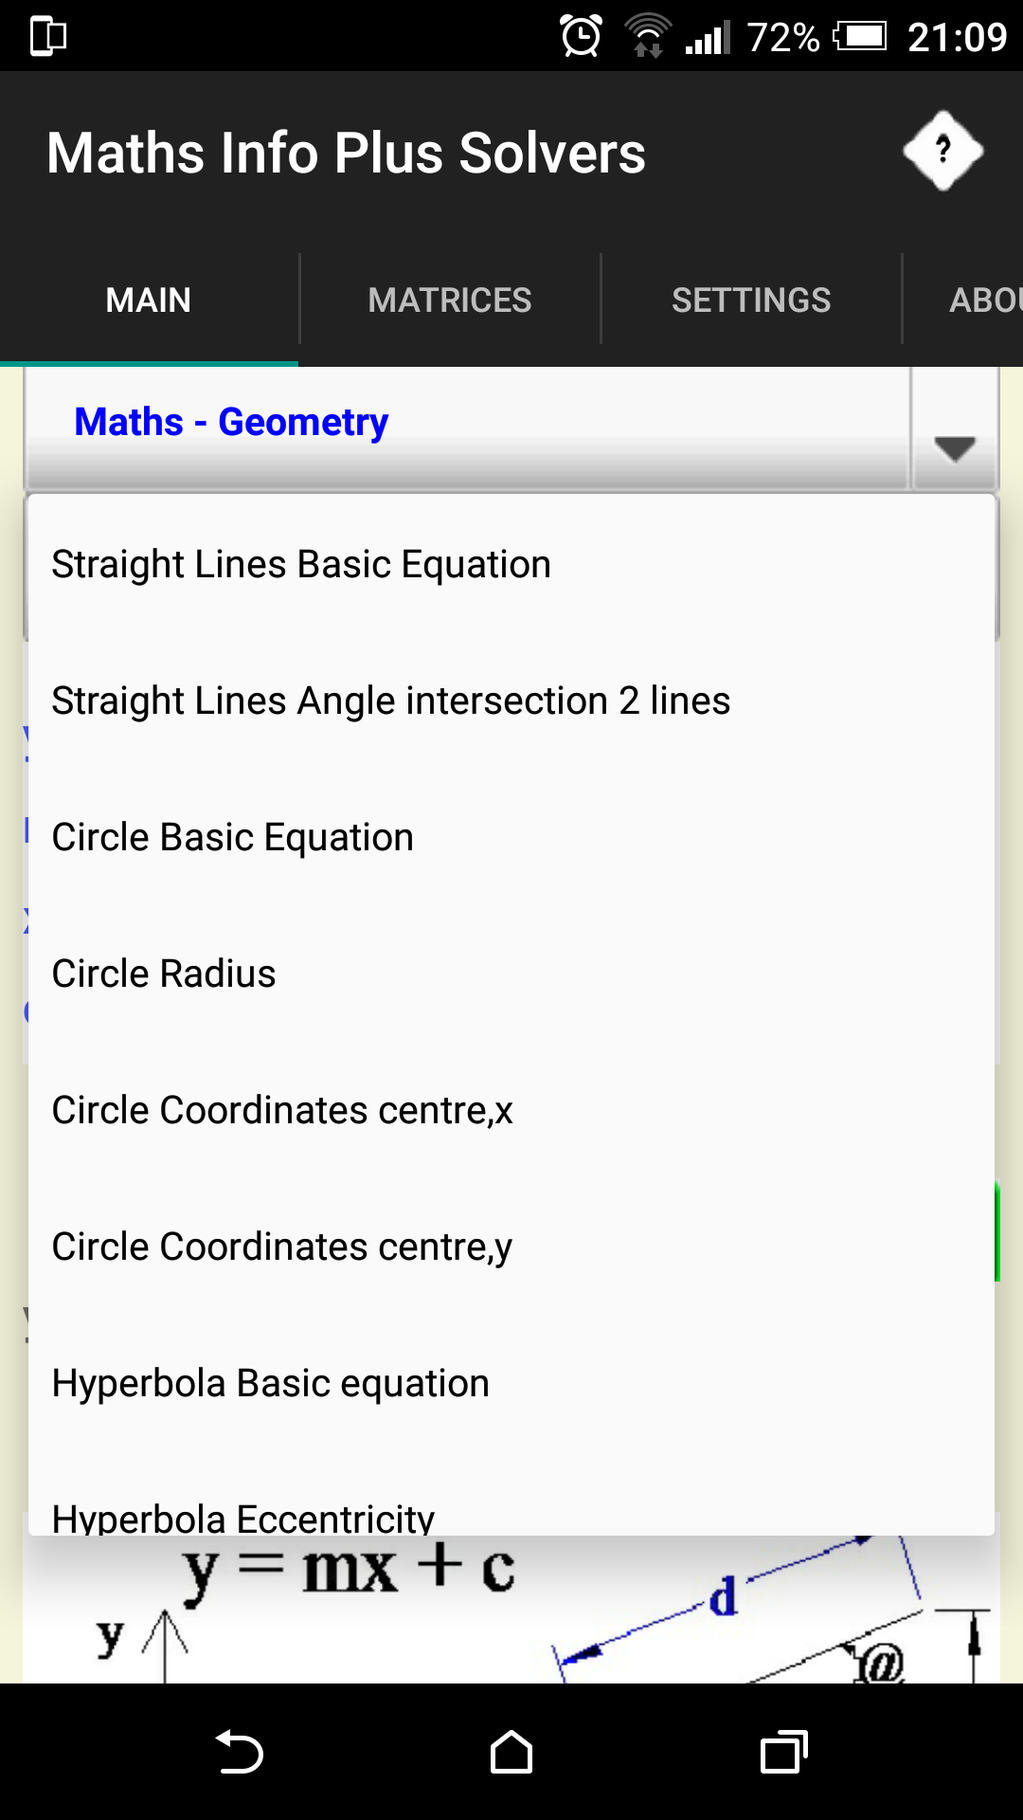 Maths Info And Solvers free Screenshot 7